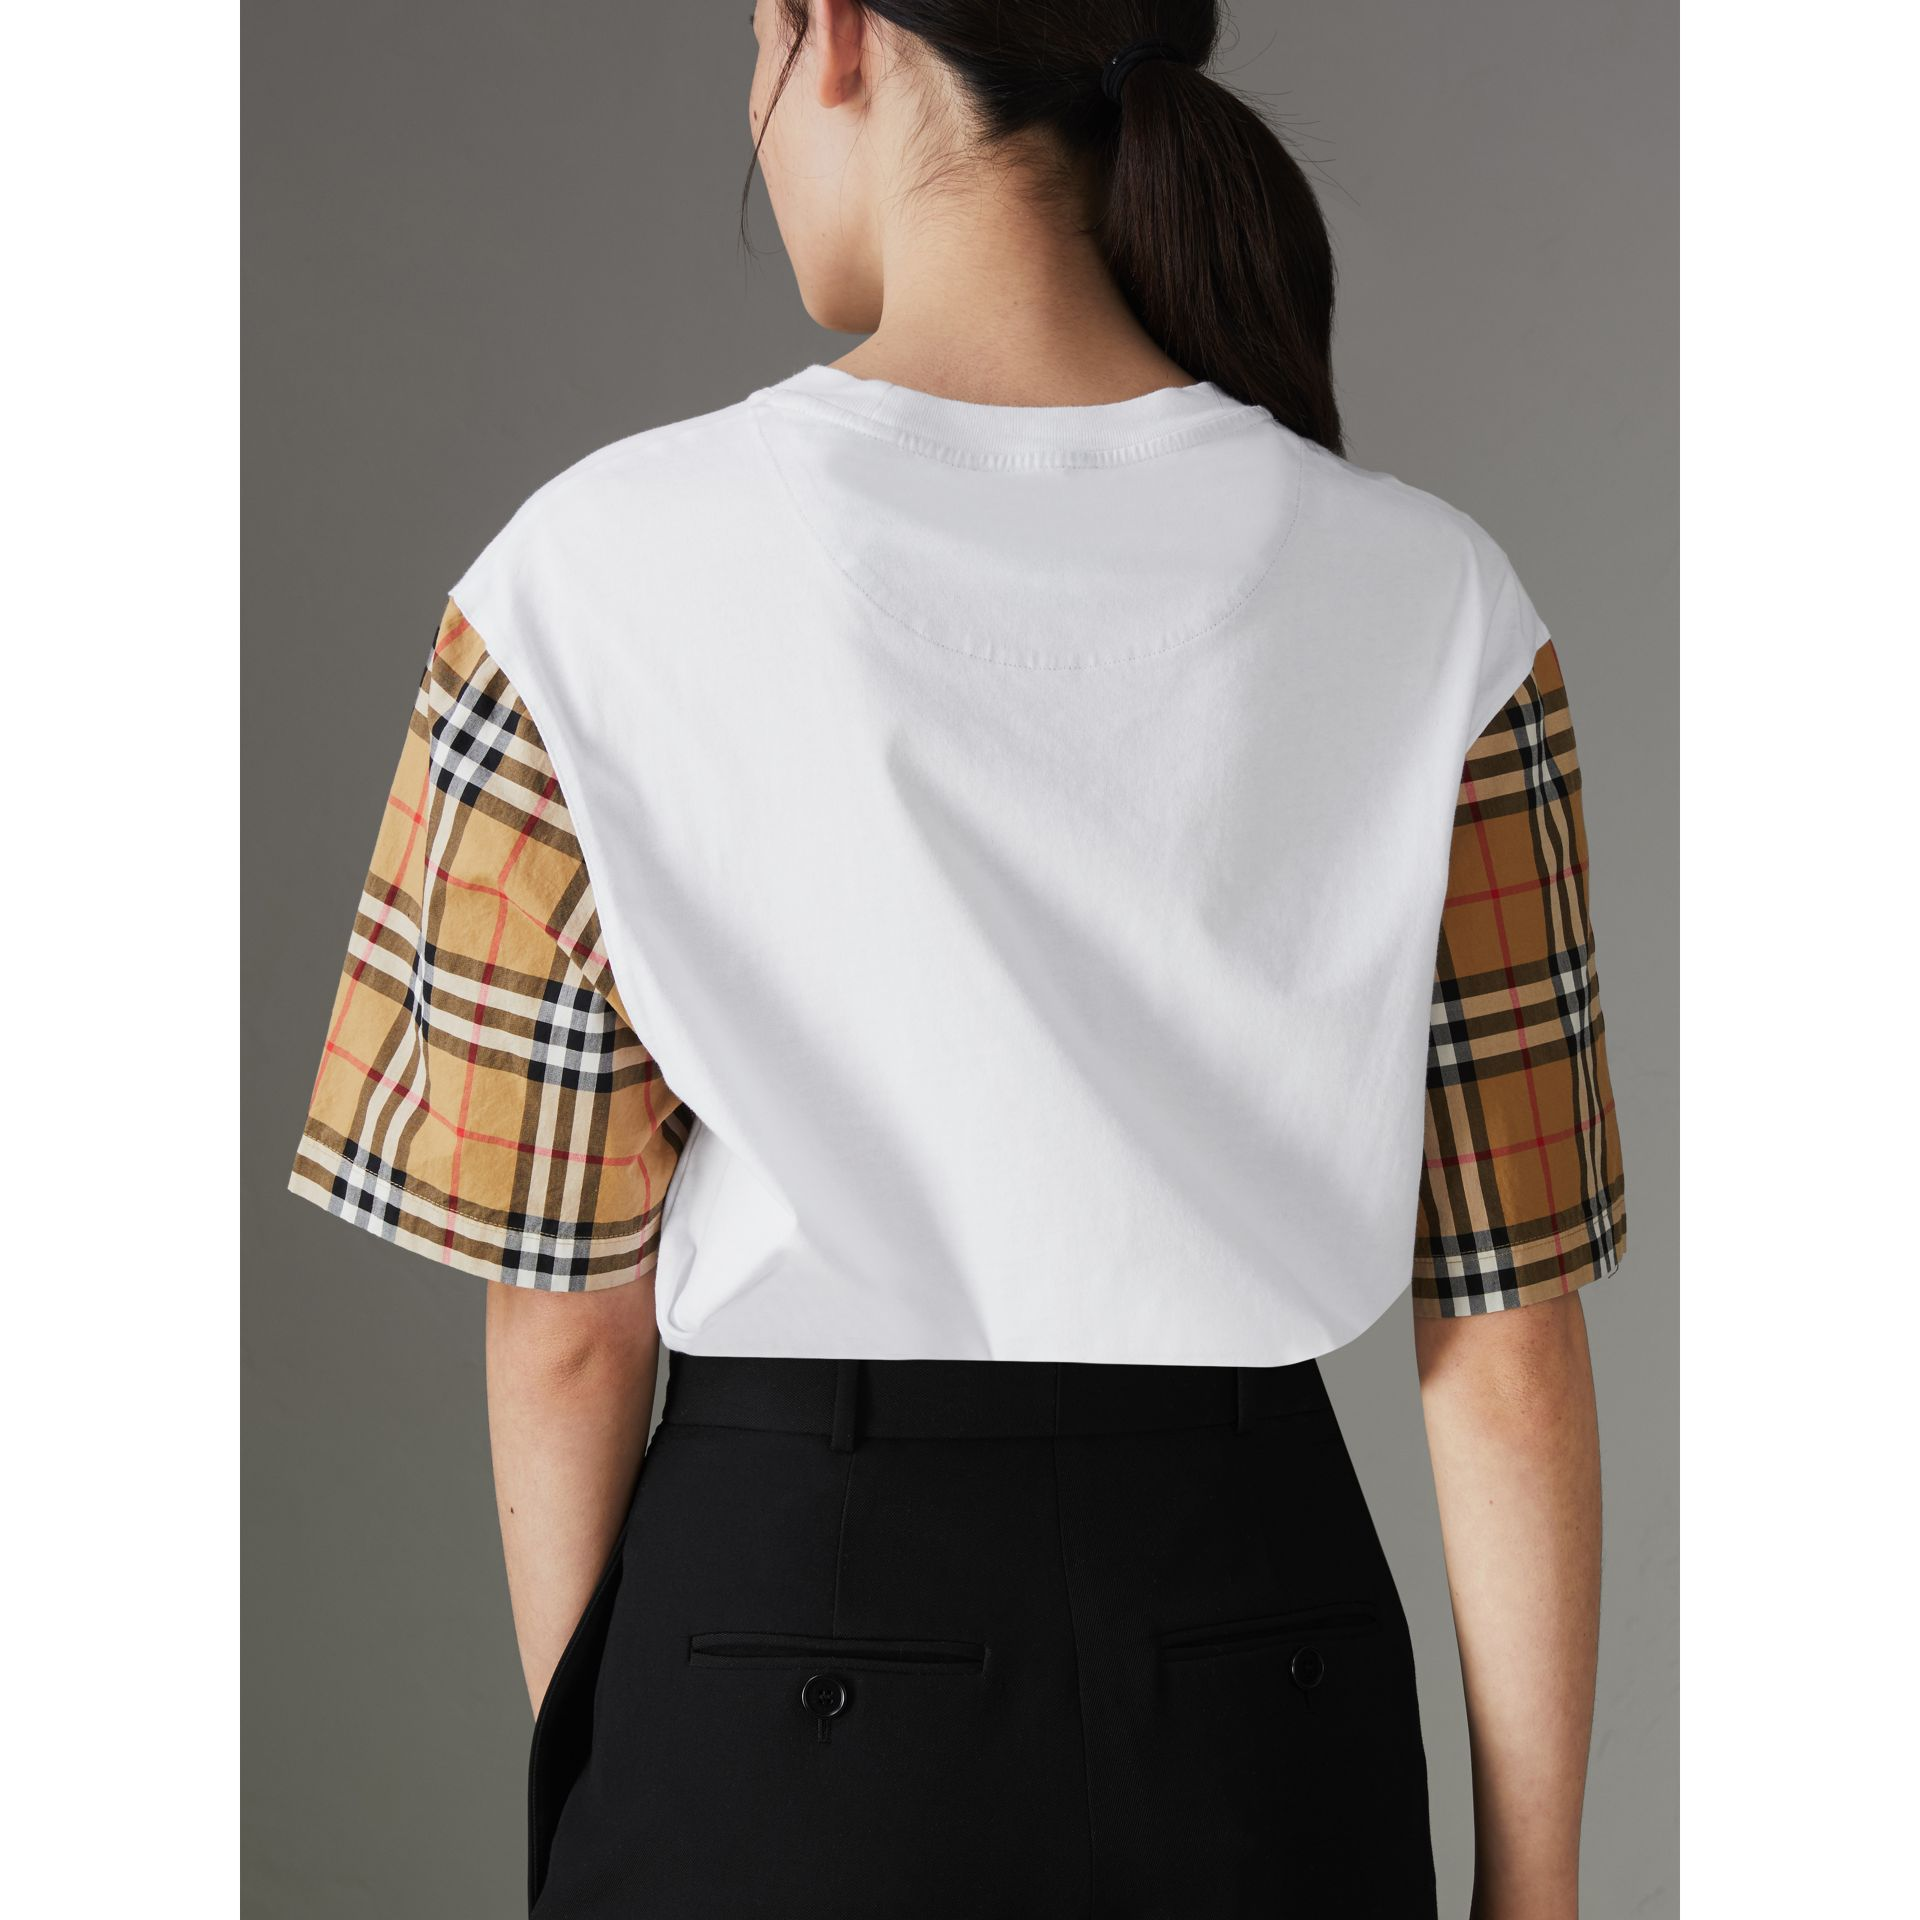 Vintage Check Sleeve Cotton T-shirt in White - Women | Burberry Australia - gallery image 2